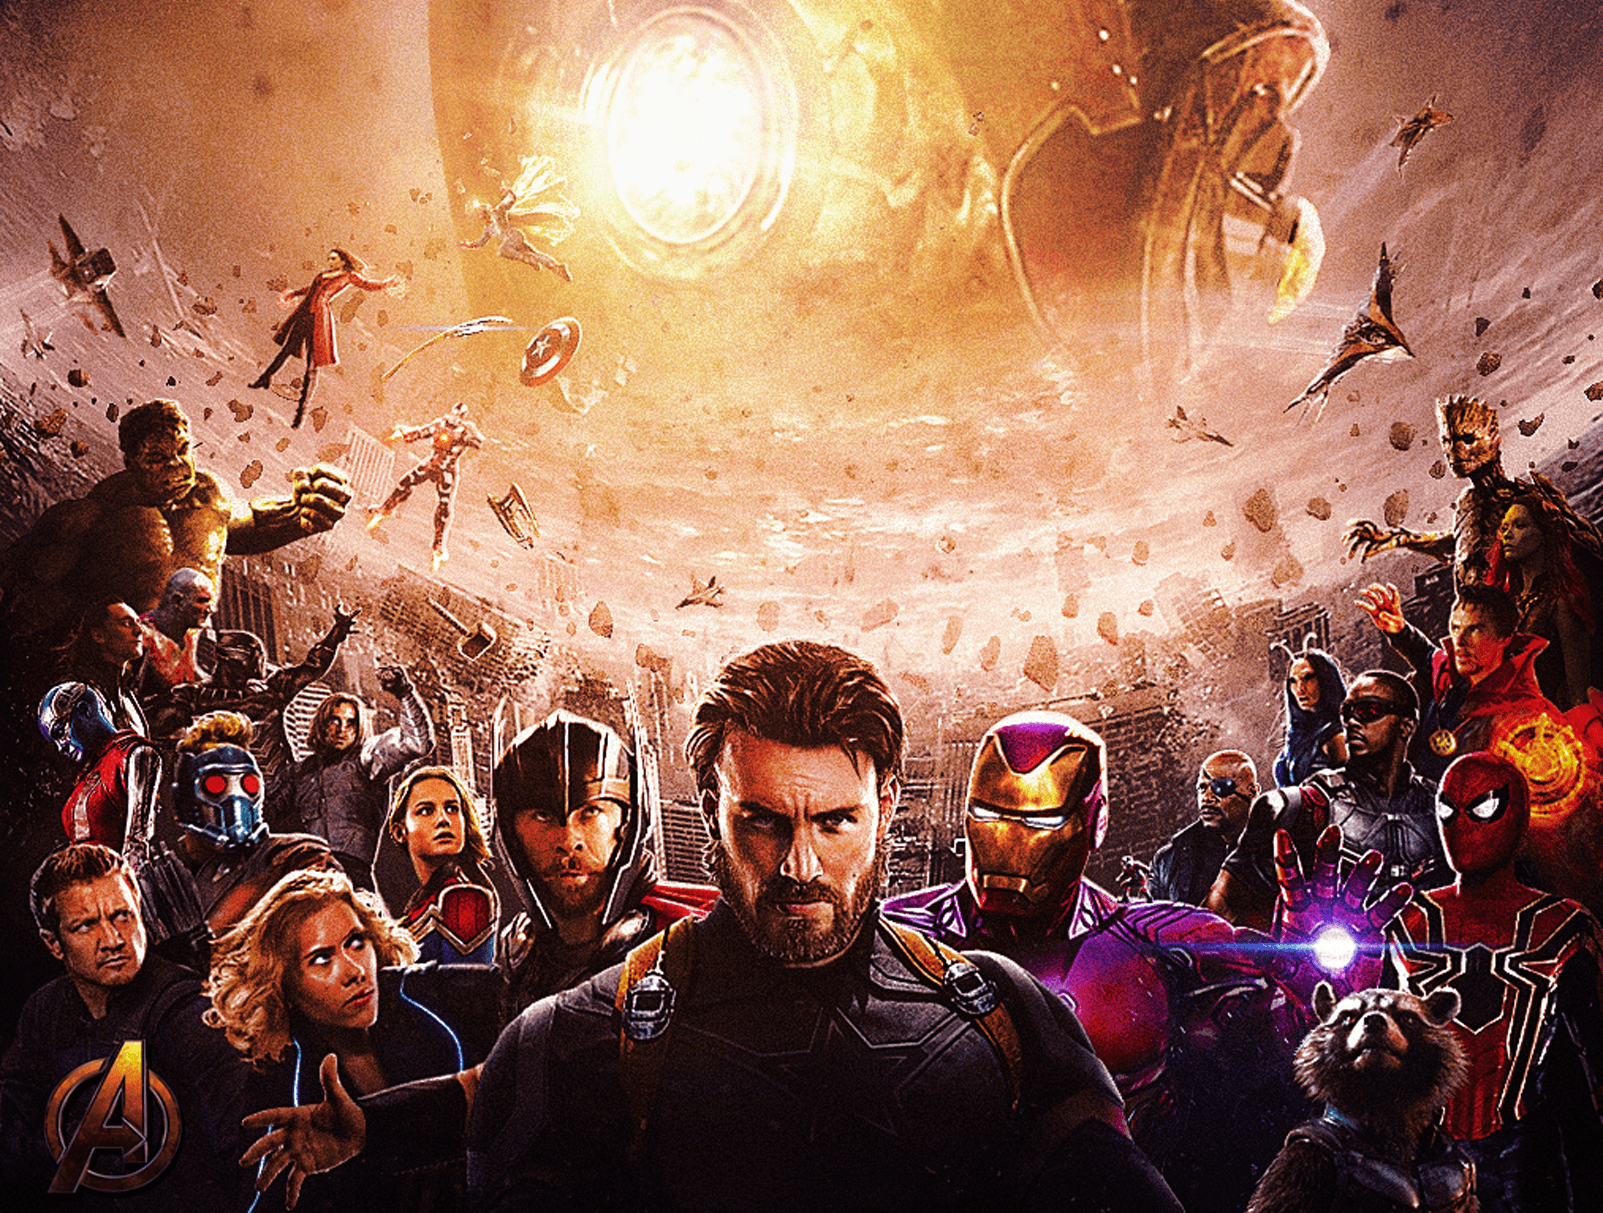 Avengers Infinity War Wallpapers Top Free Avengers Infinity War Backgrounds Wallpaperaccess